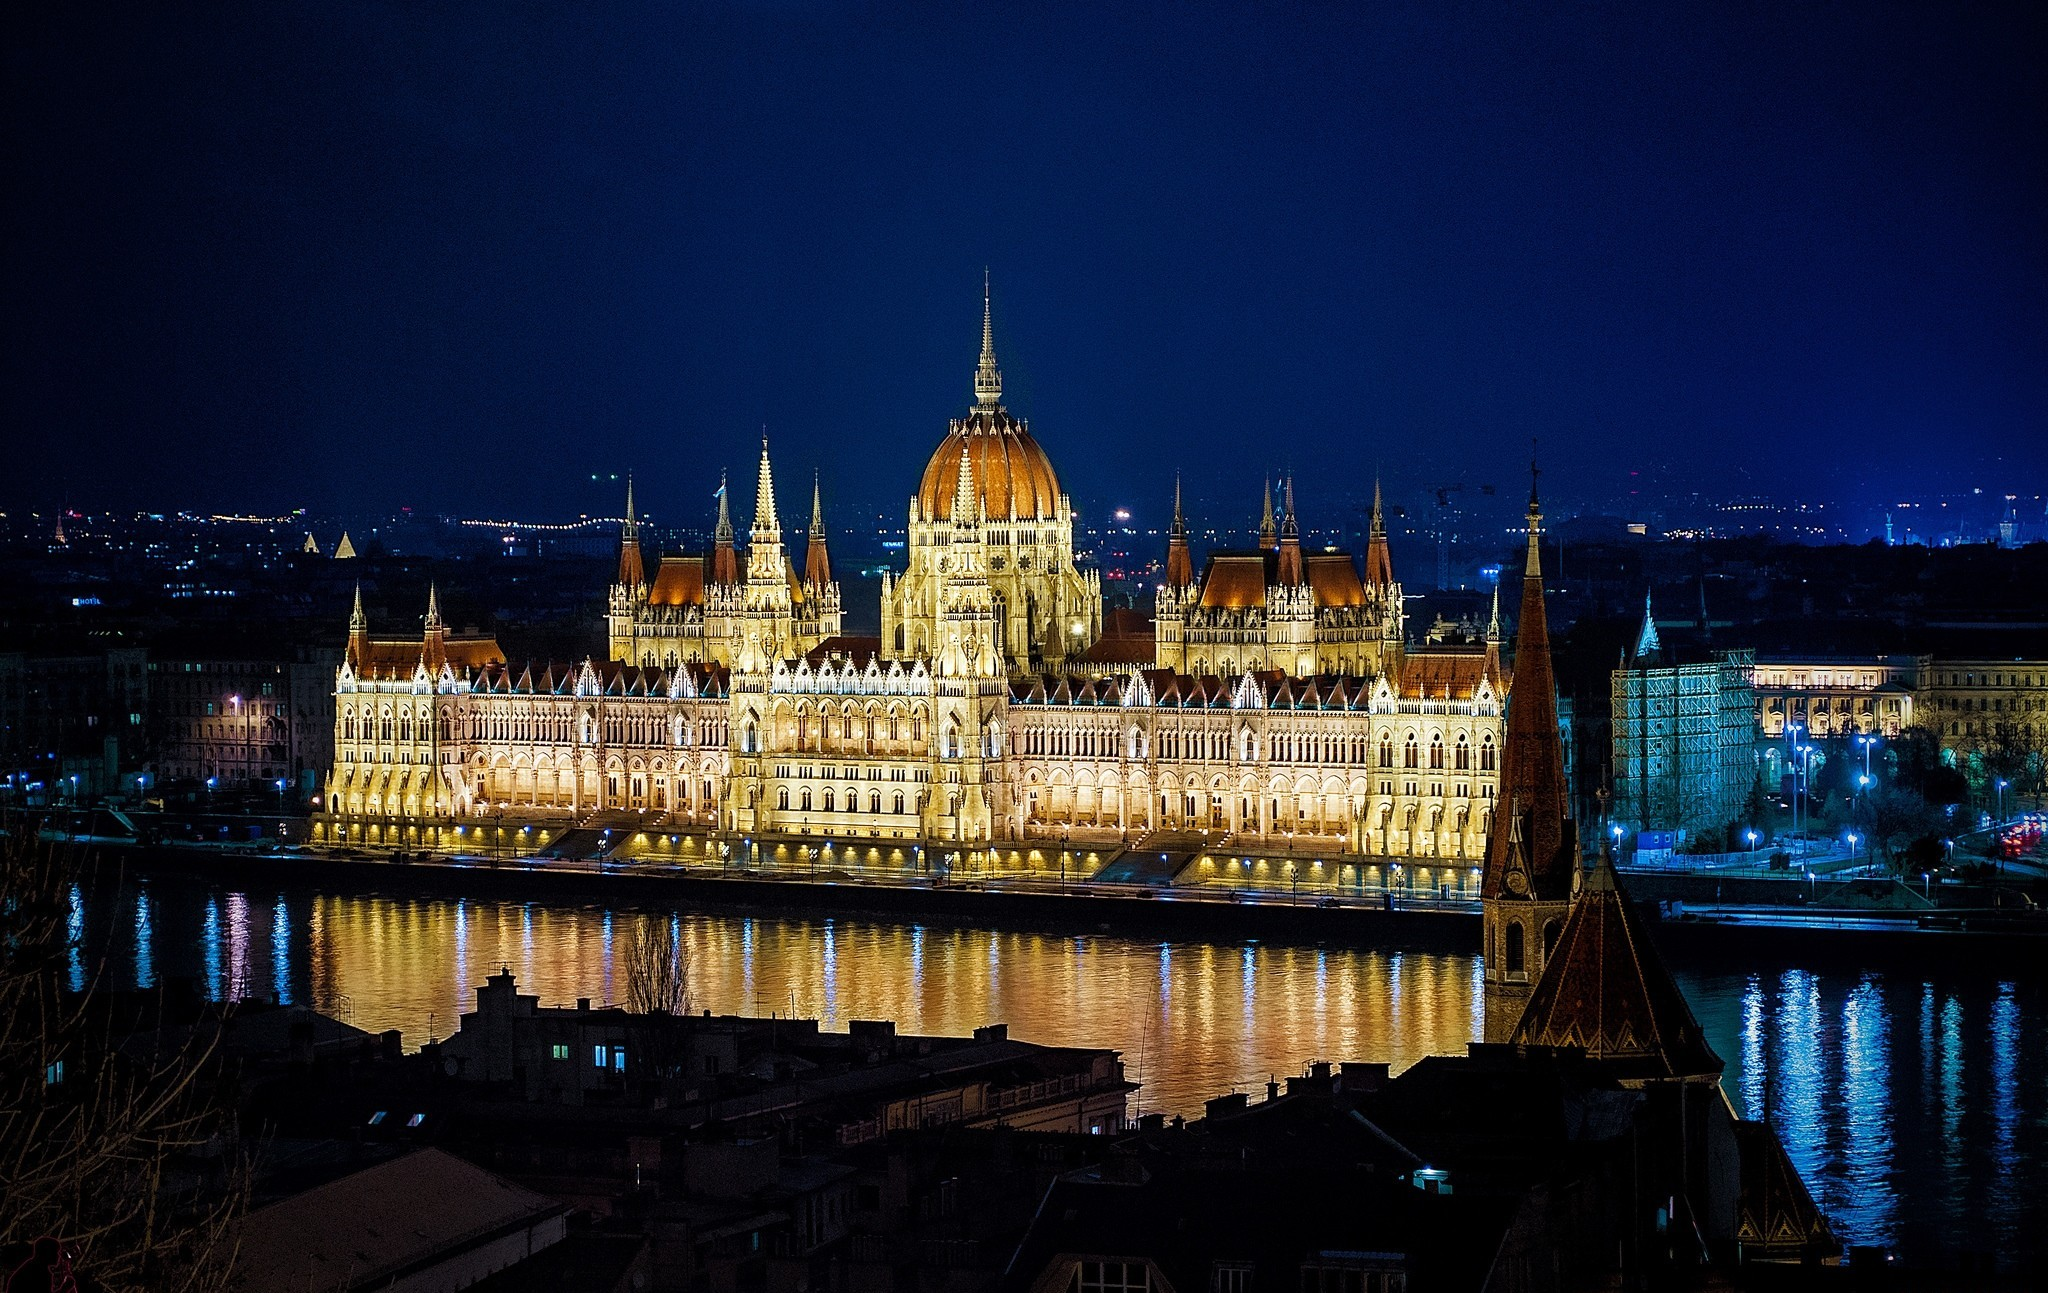 Xmas Wallpaper Iphone Budapest The Parliament Building At Night Full Hd